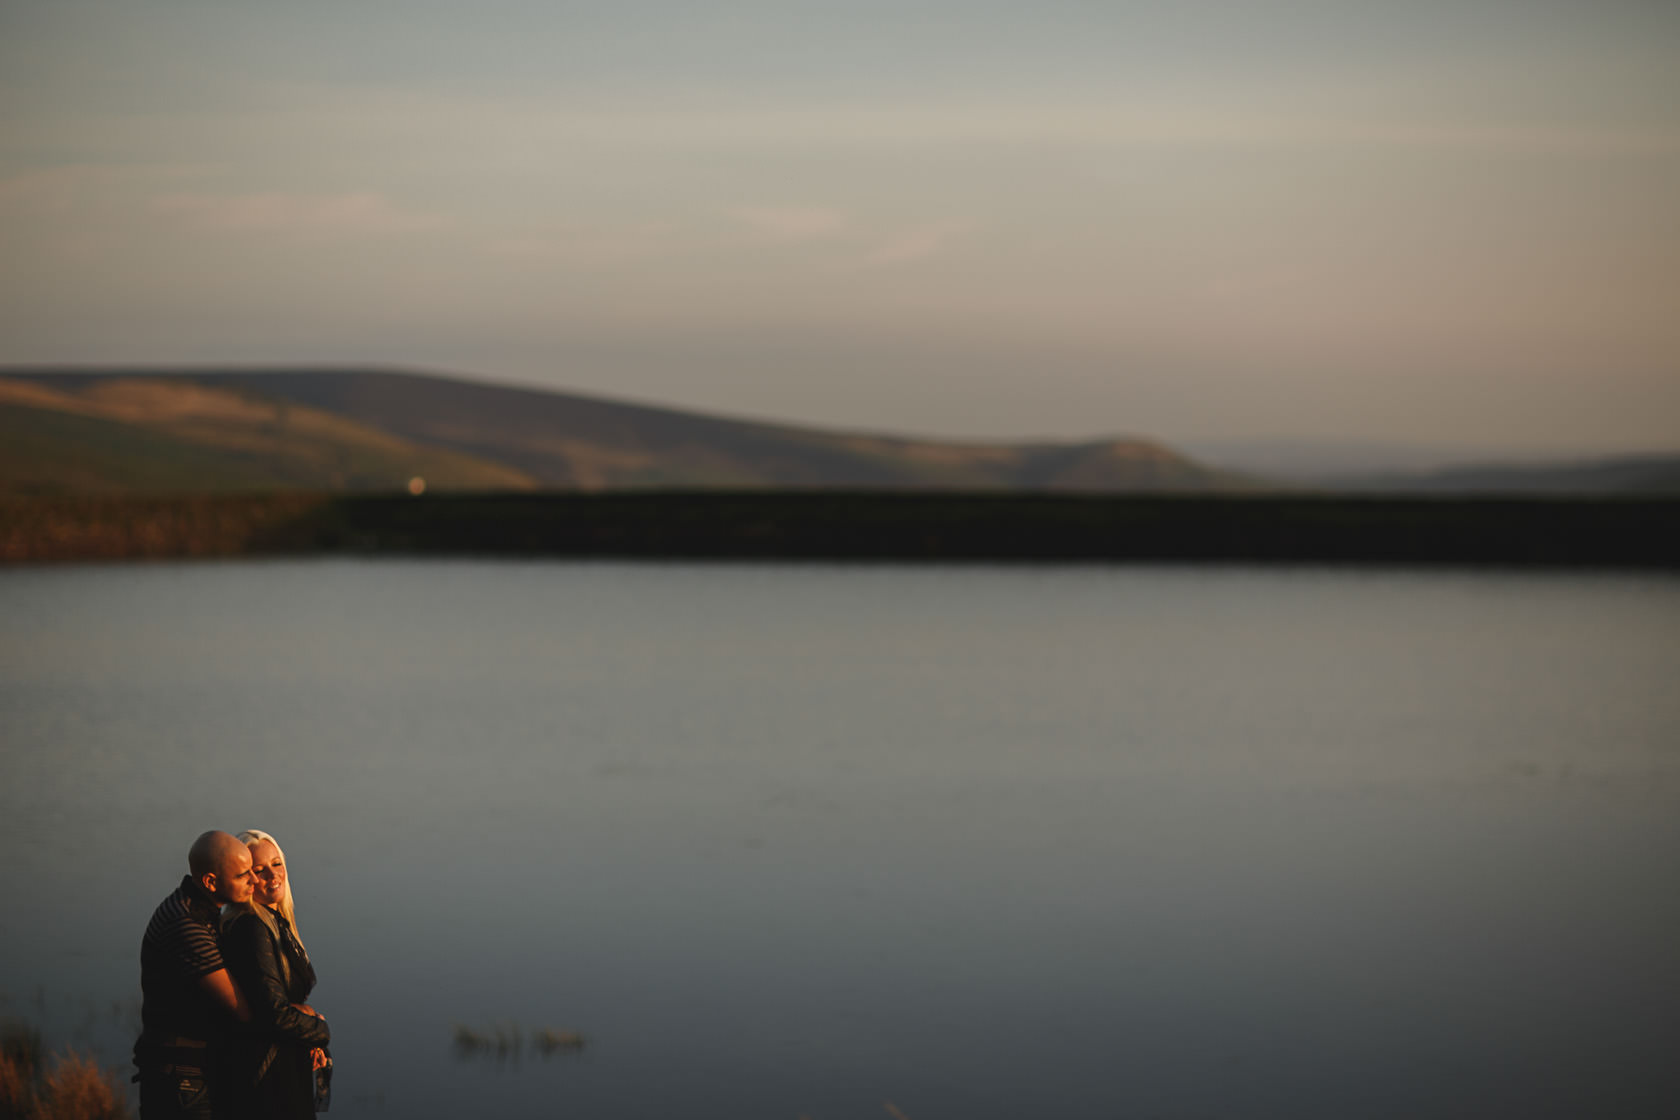 Golden hour engagement shoot, sunset prewedding, ARJ Photography www.arj-photo.co.uk